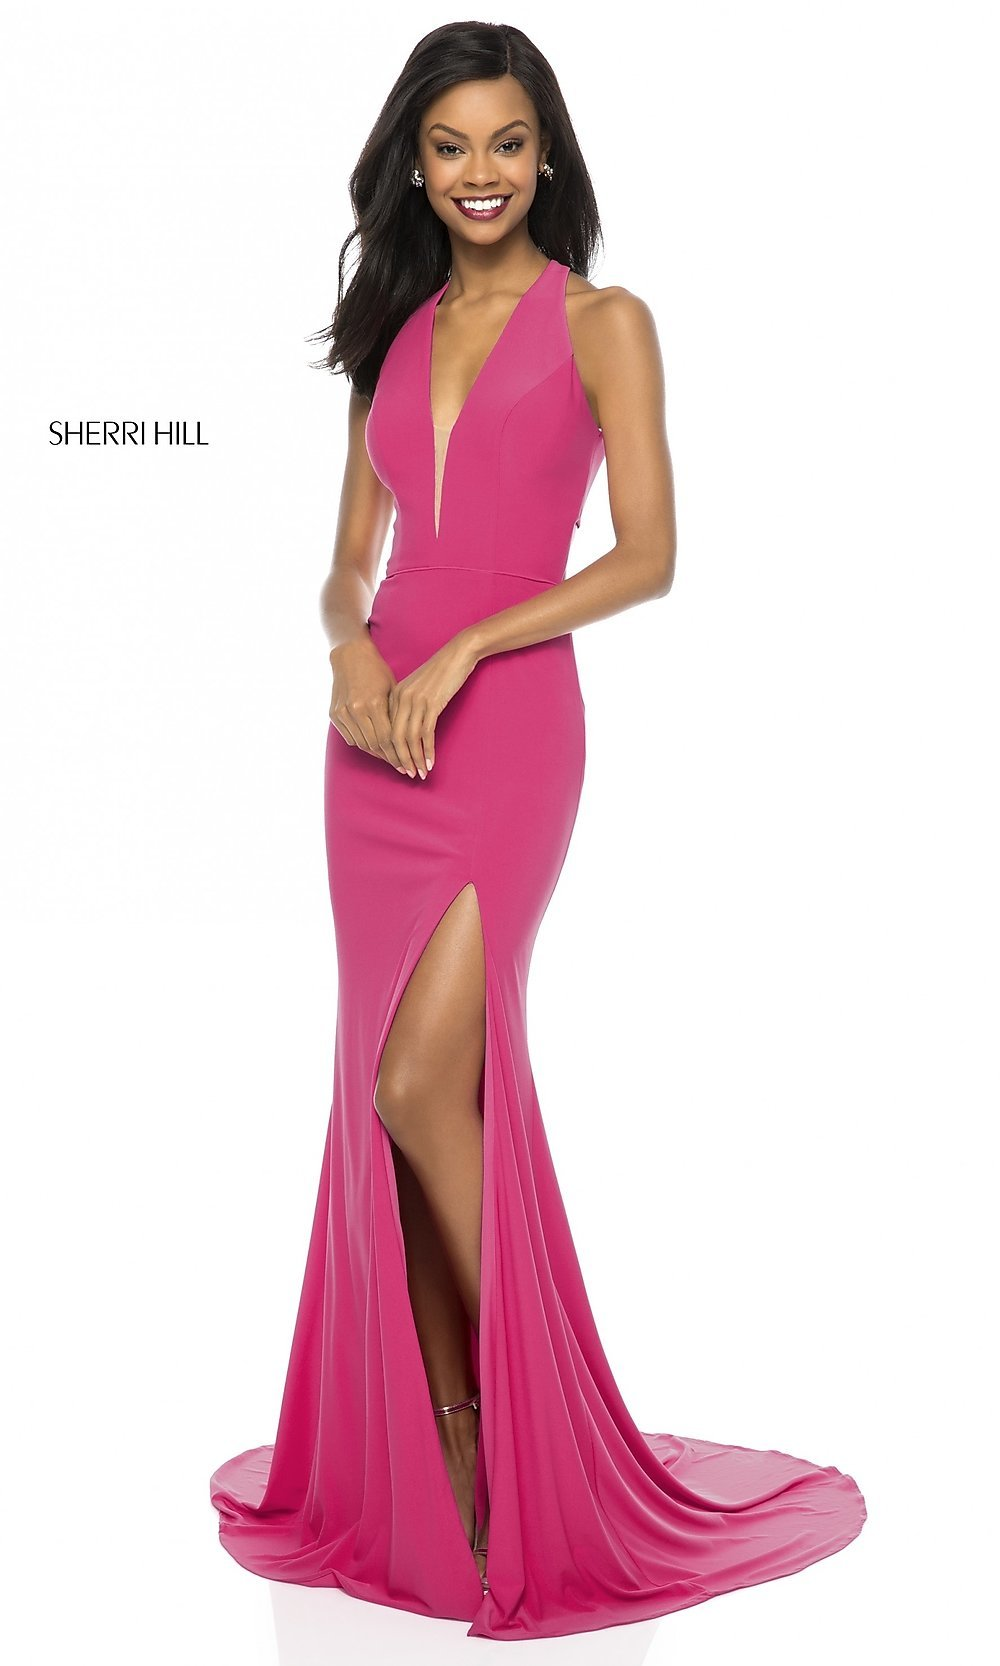 Sherri Hill Prom Dress with Back Cut Out - PromGirl